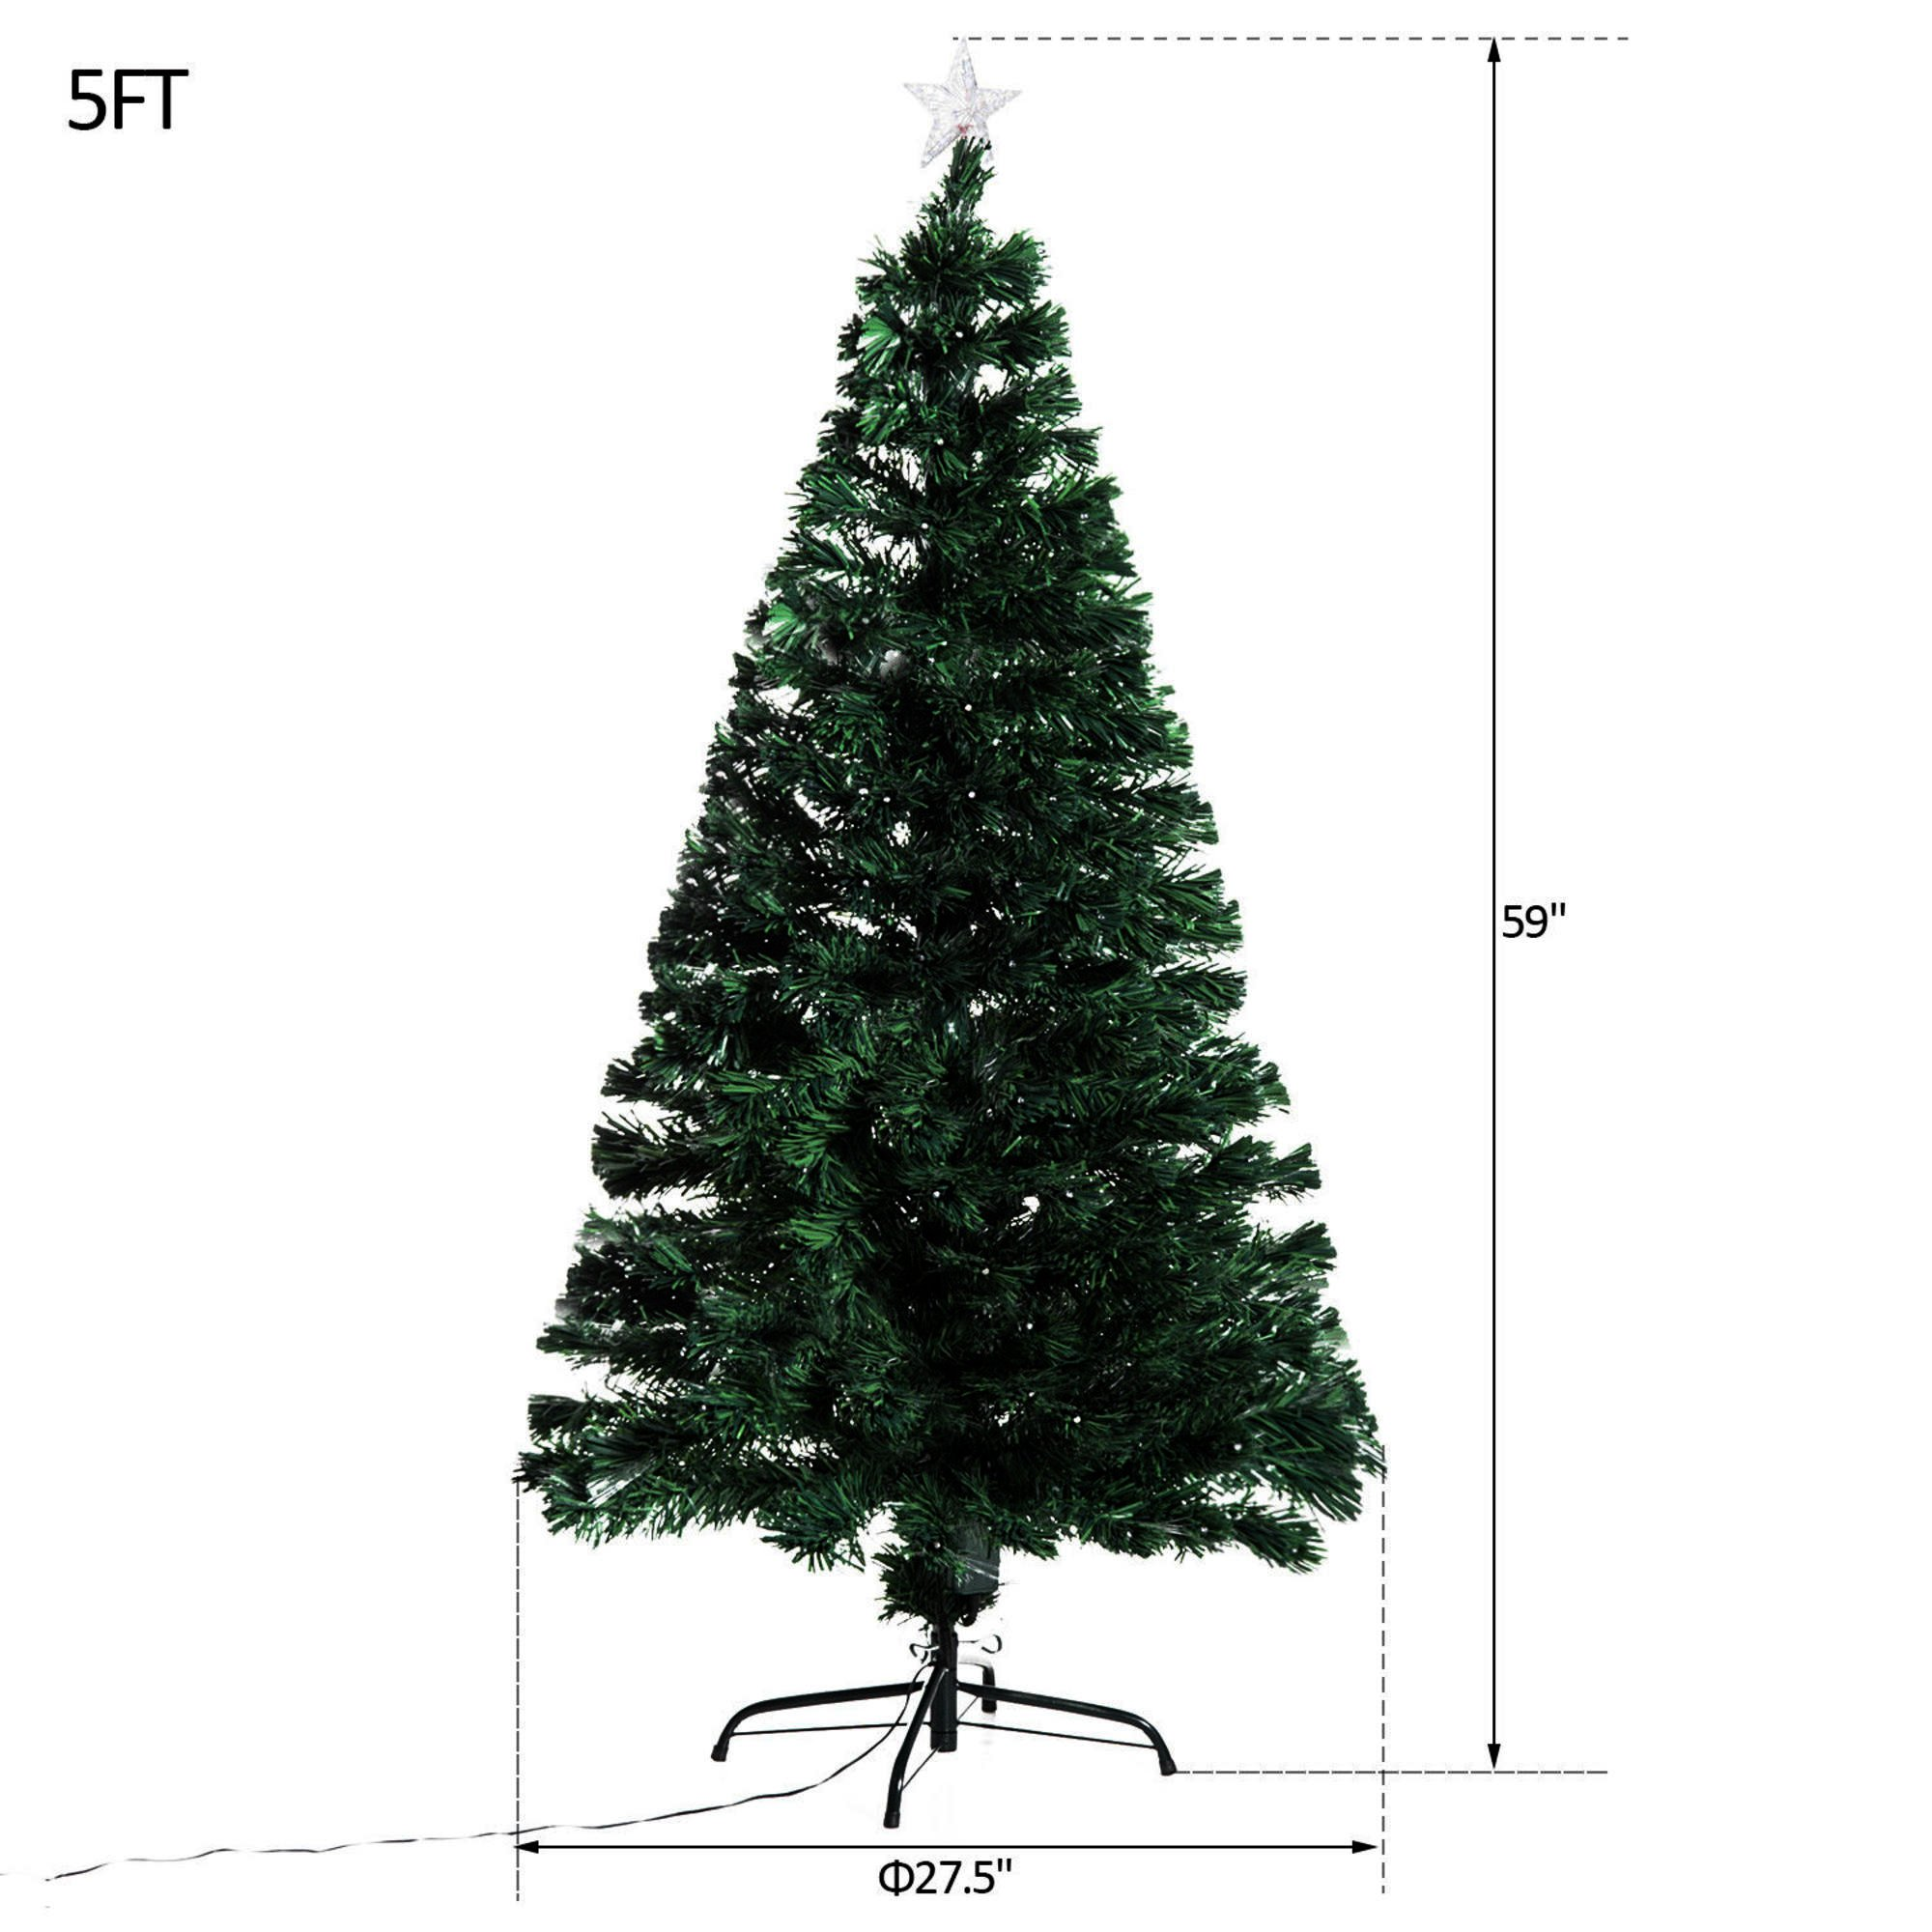 Artificial Christmas Tree. This Fake 5 Foot Xmas Fiber Optic Pine Densely, Lush, Easy-to-shape Green Branches Looks Natural. Great For Indoor, Holiday Season Party Decor & Festive Mood.